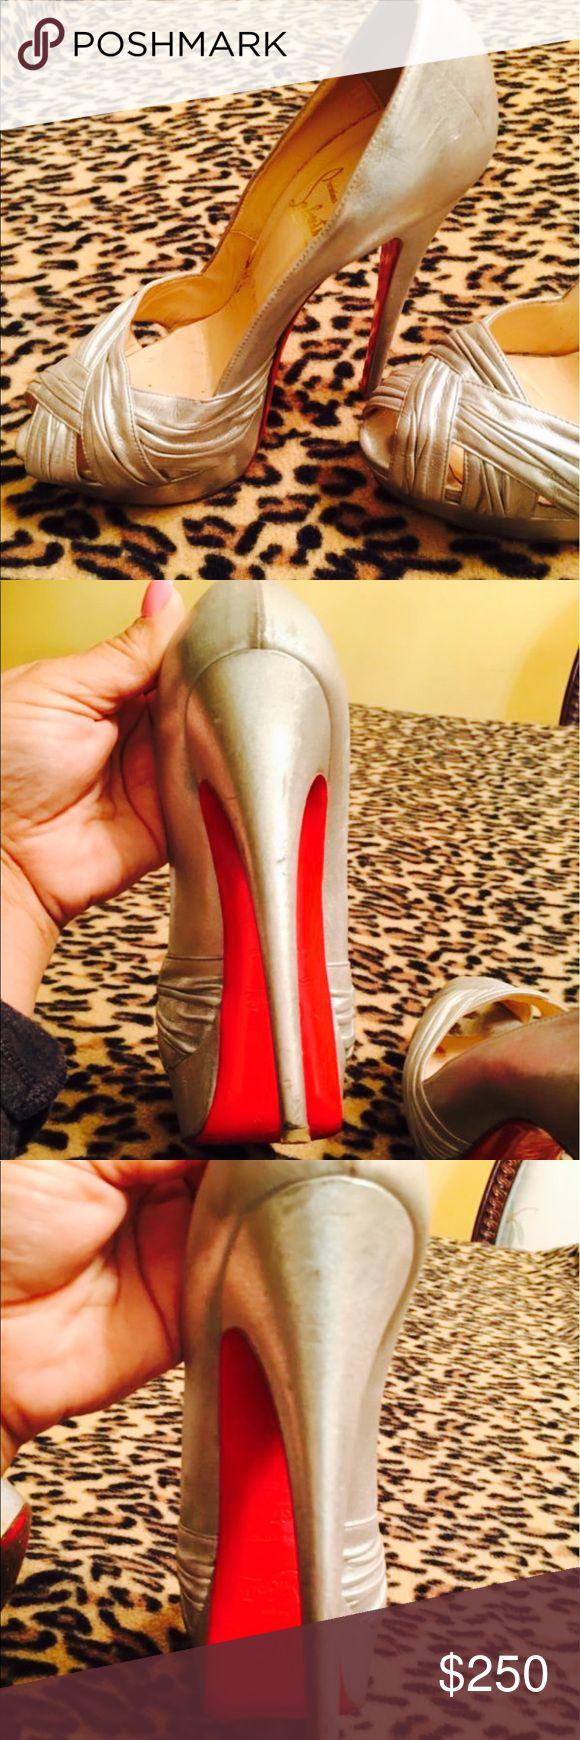 Christian louboutin silver pumps Condition Pre-owned Seller Notes Good condition Few normal scrapes Please refer to the pictures Great shoe! Quantity1 available BrandChristian Louboutin MaterialLeather ColorSilver US Shoe Size (Women's)7 Heel HeightVery High (4.5 in. and Up) Item Description Size 37 Christian Louboutin Shoes Heels